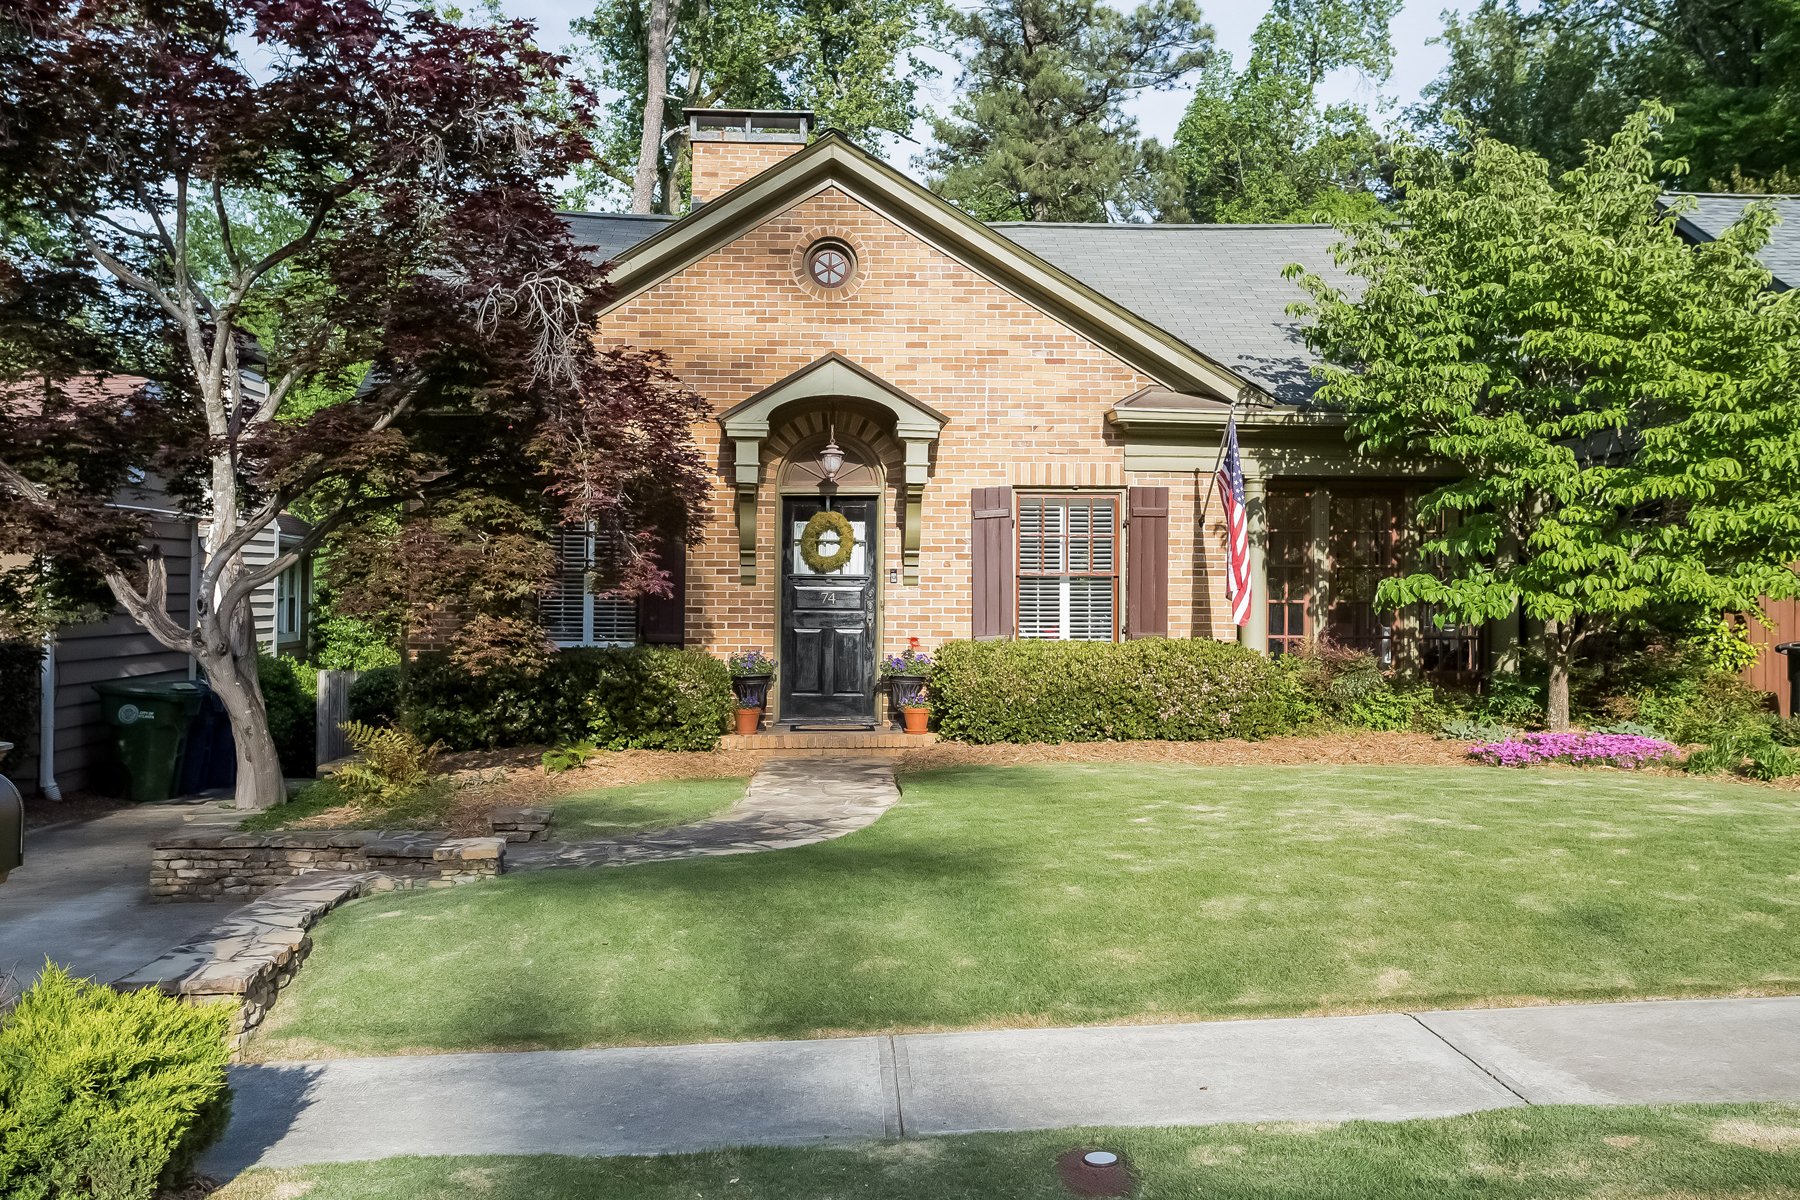 Single Family Home for Sale at Charming Buckhead Bungalow 74 Park Circle NE Peachtree Park, Atlanta, Georgia, 30305 United States